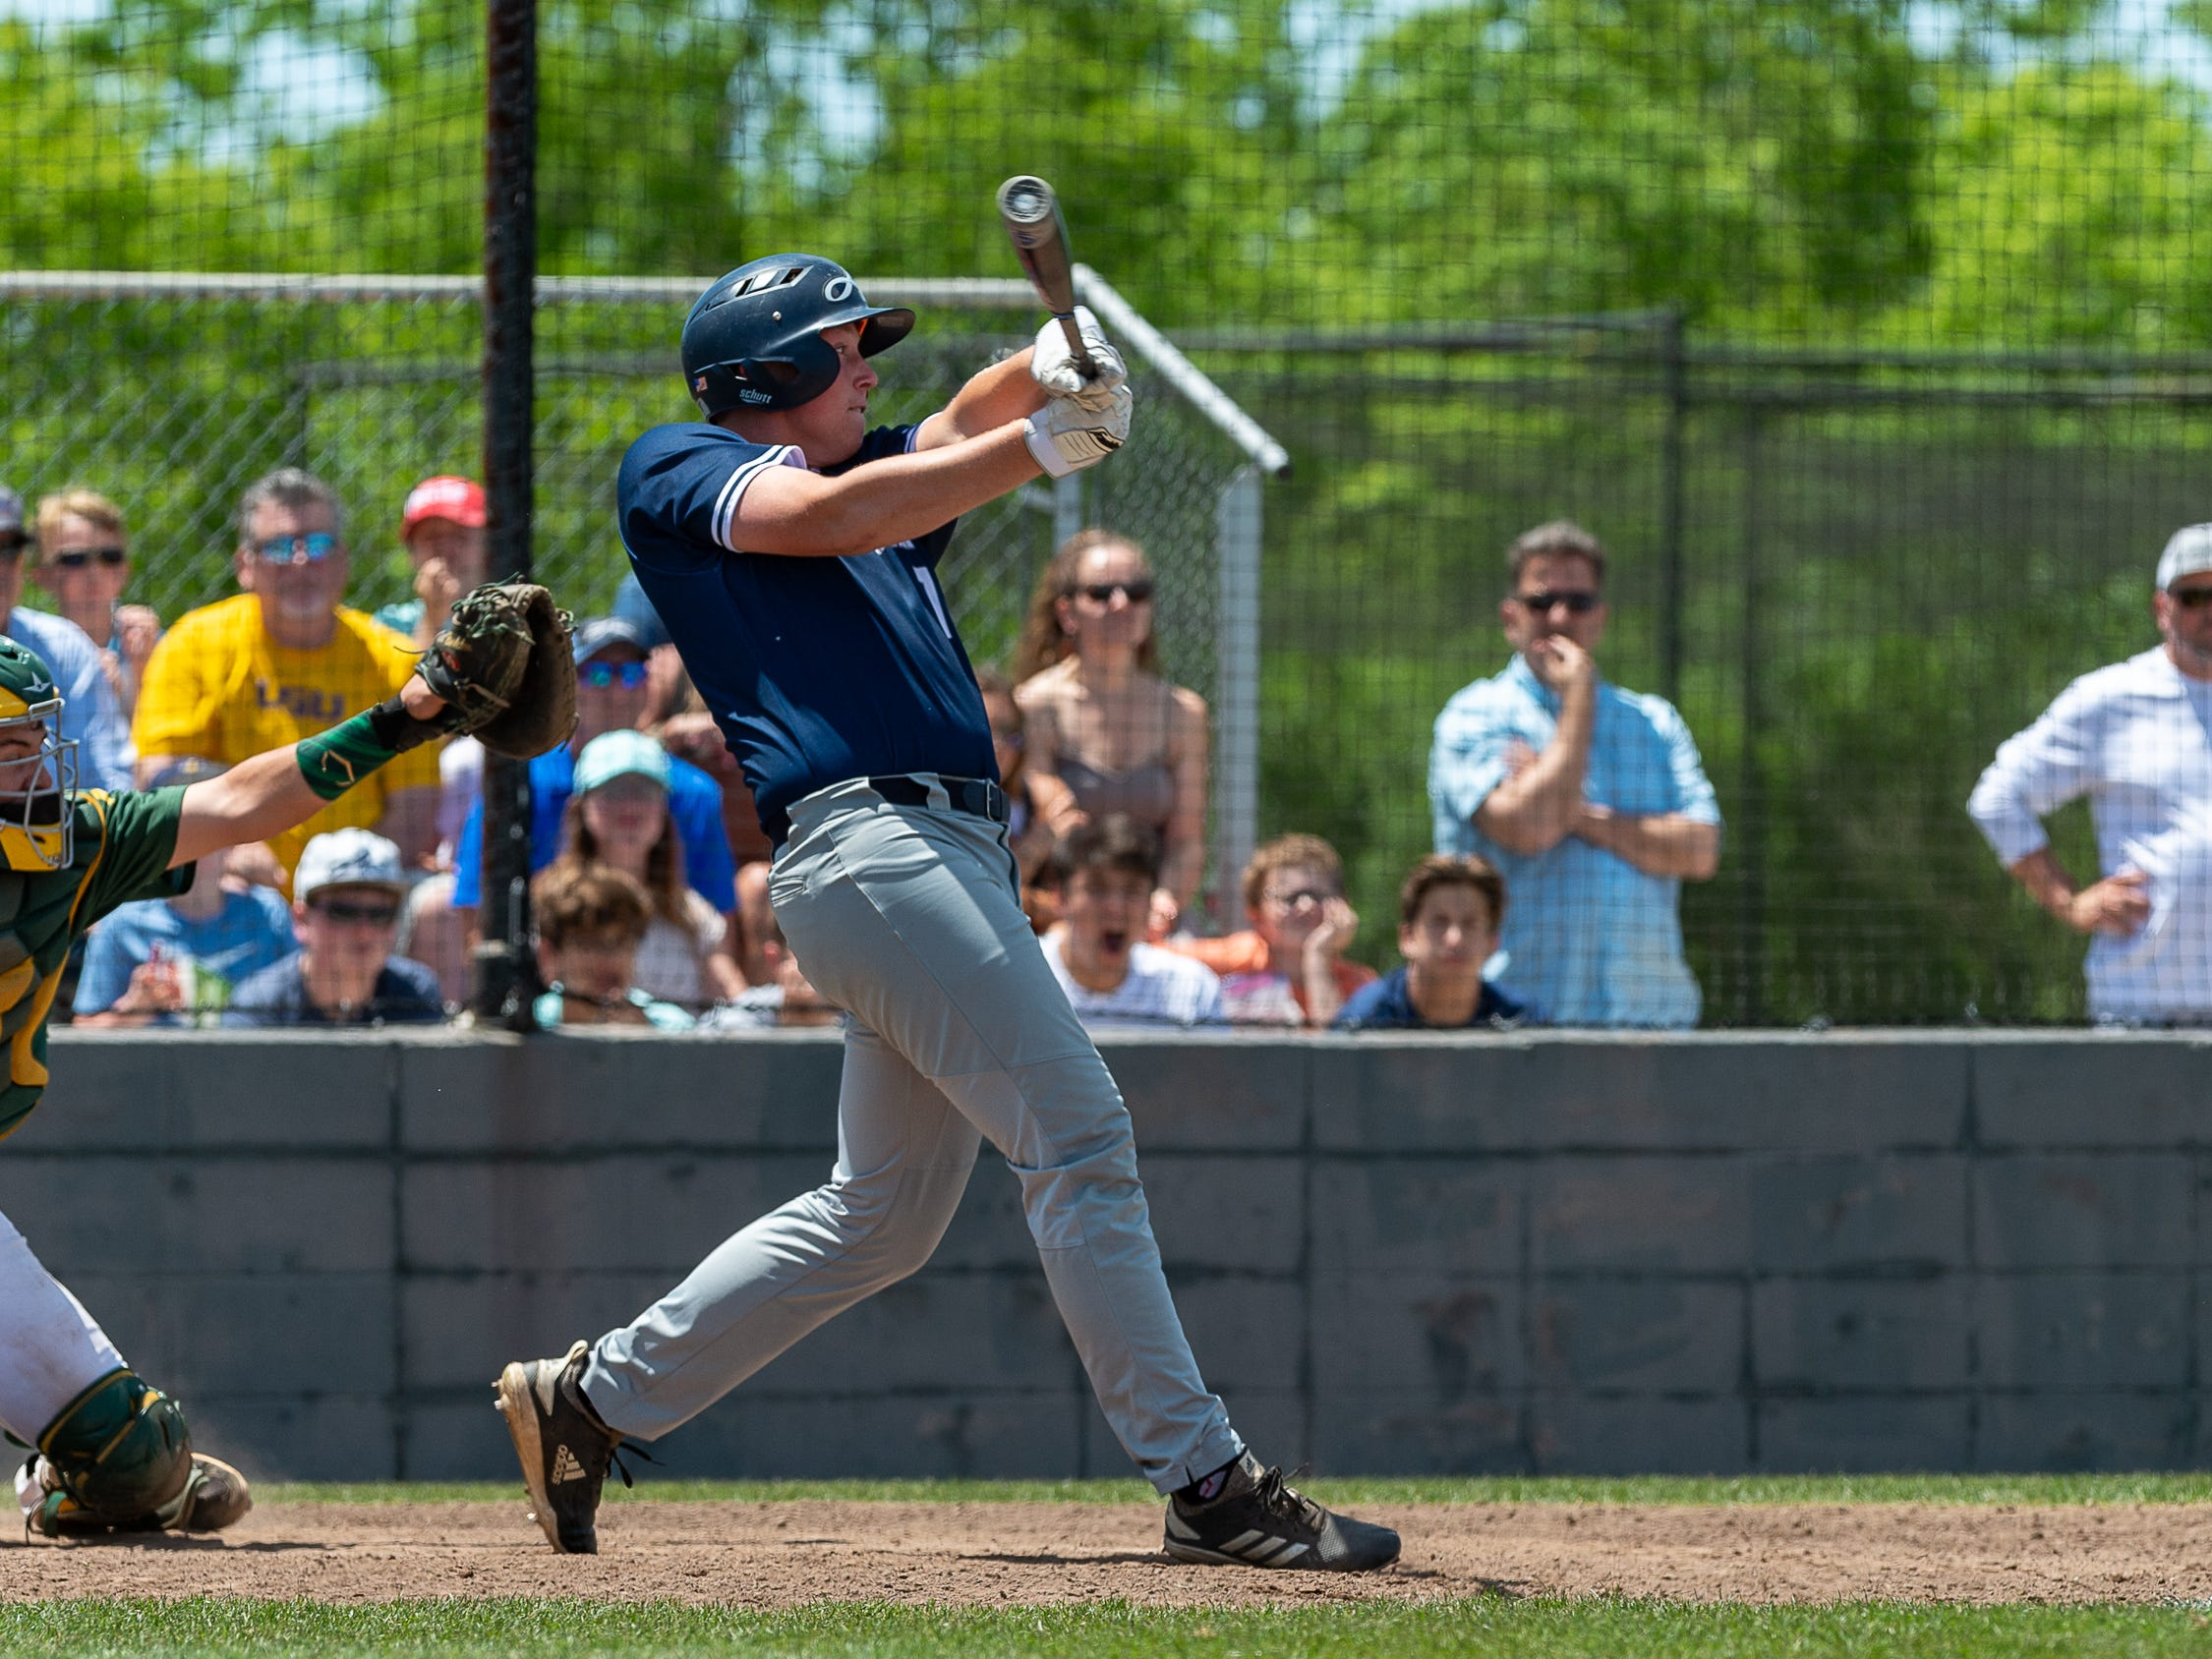 Drake Lee at the plate as the Ascension Blue Gators take on Holy Savior Menard in game two of the semi final round of the LHSAA playoffs. Sunday, May 5, 2019.